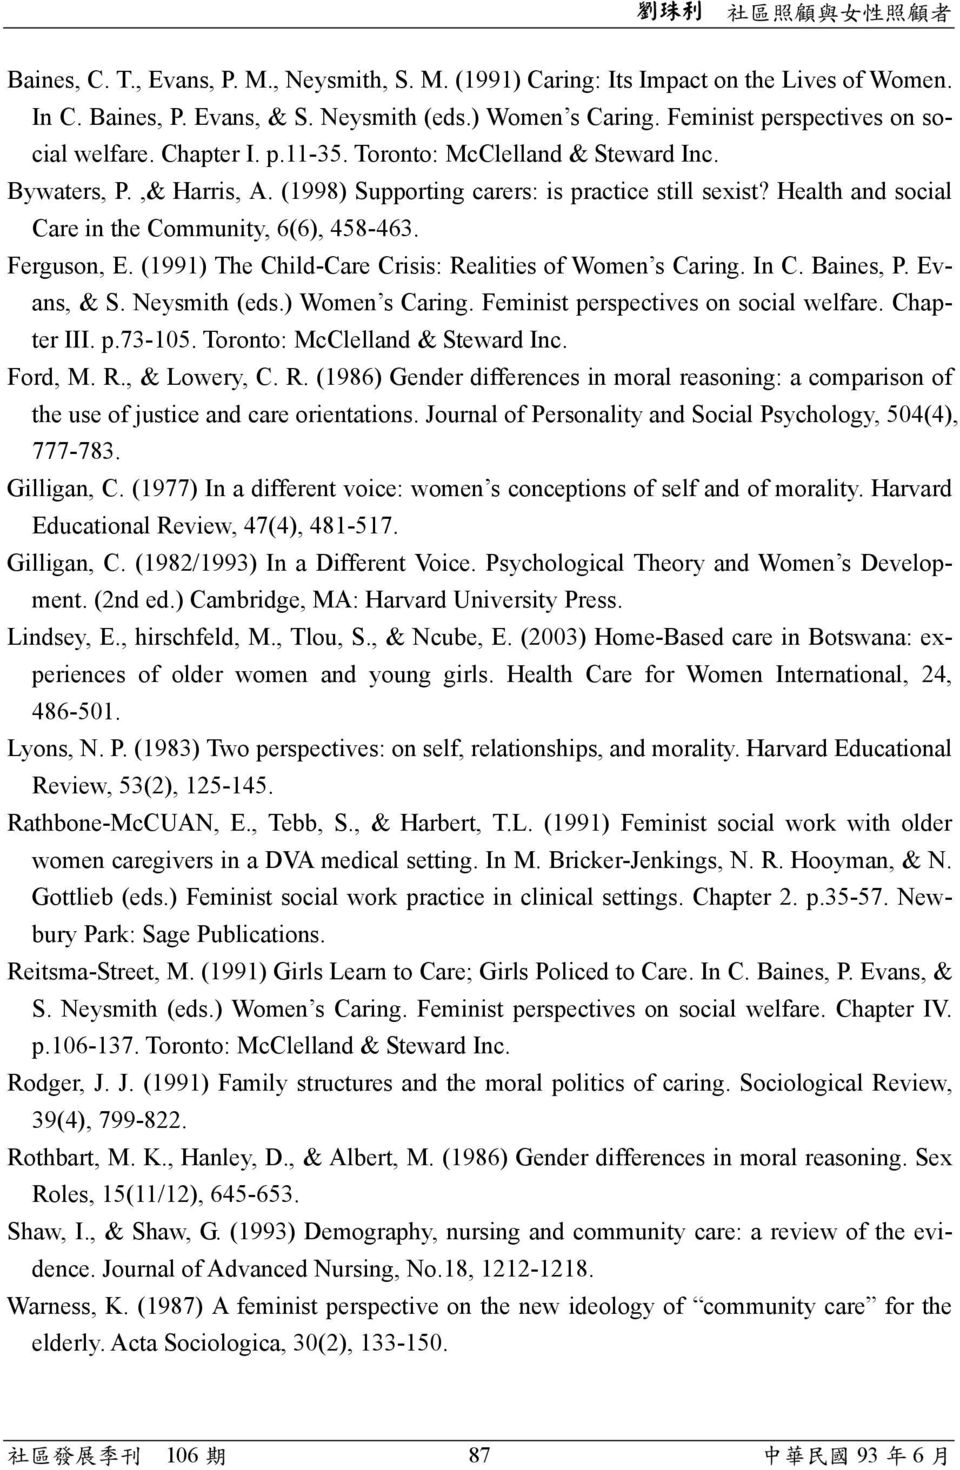 Ferguson, E. (1991) The Child-Care Crisis: Realities of Women s Caring. In C. Baines, P. Evans, & S. Neysmith (eds.) Women s Caring. Feminist perspectives on social welfare. Chapter III. p.73-105.